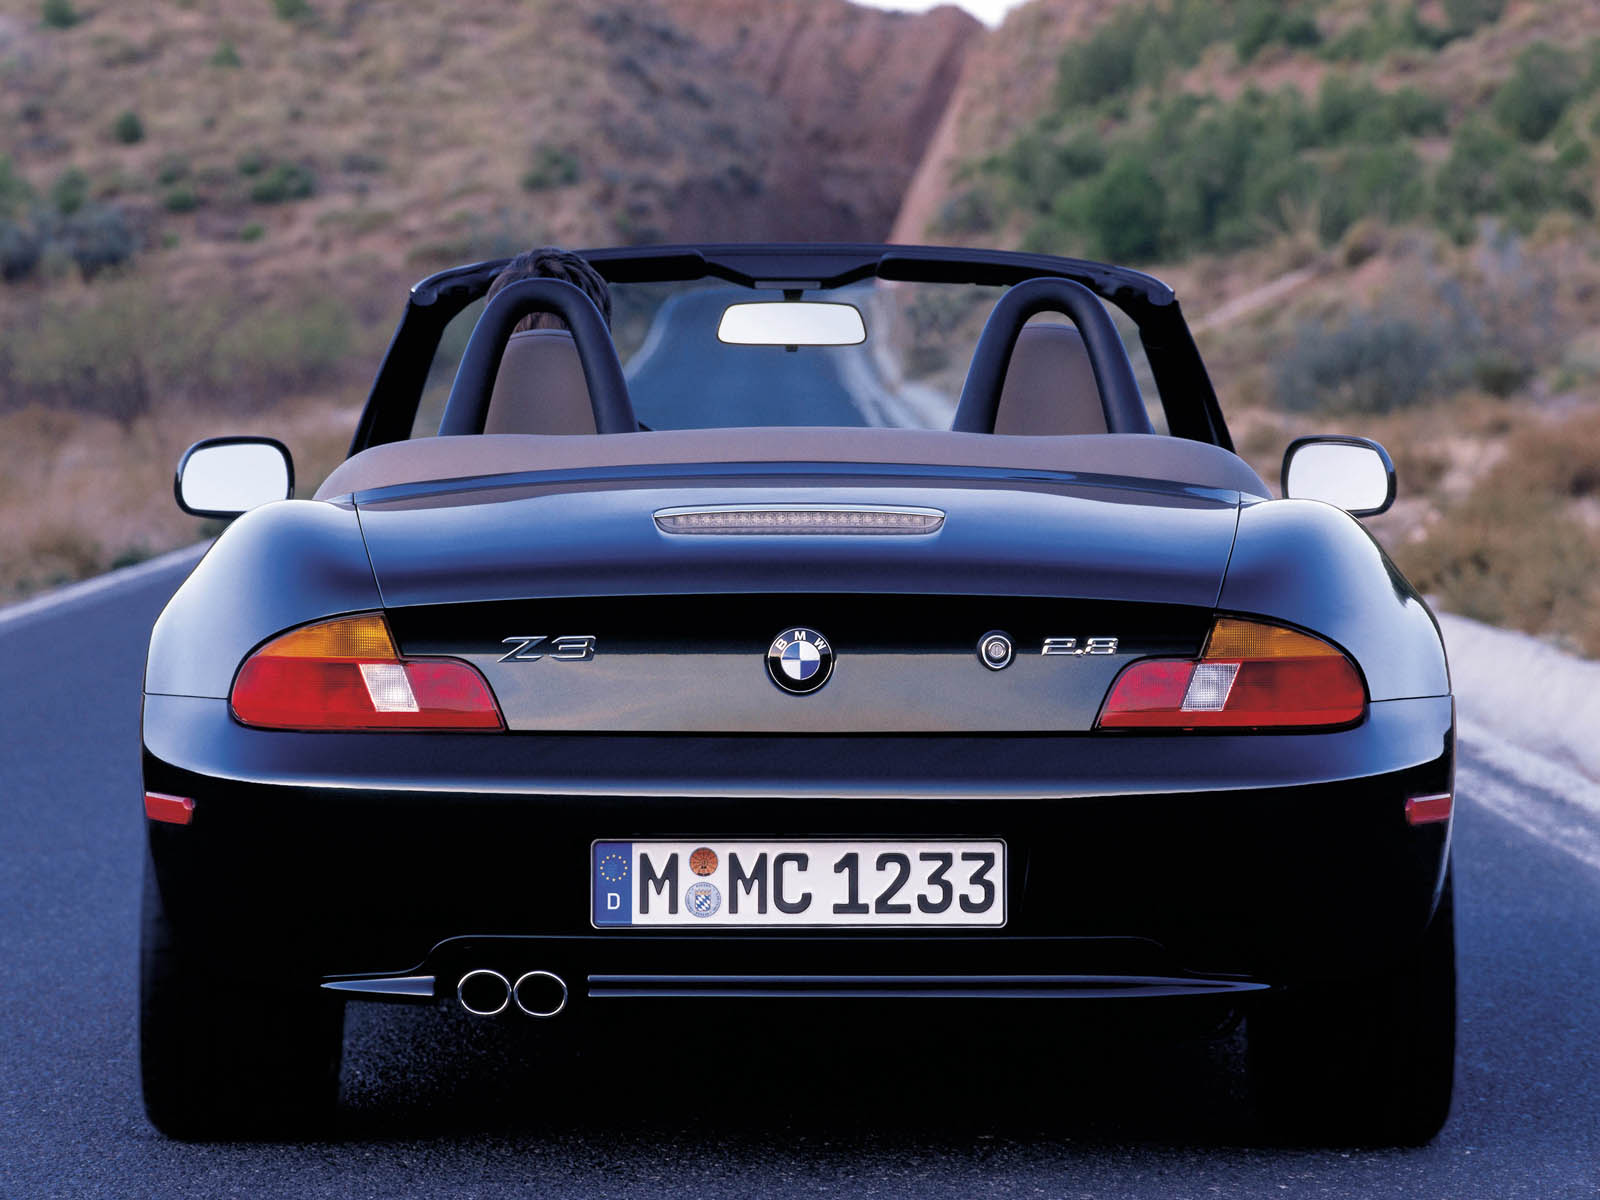 Bmw Z3 Photo Bmw Ag Z3 画像50 Naver まとめ